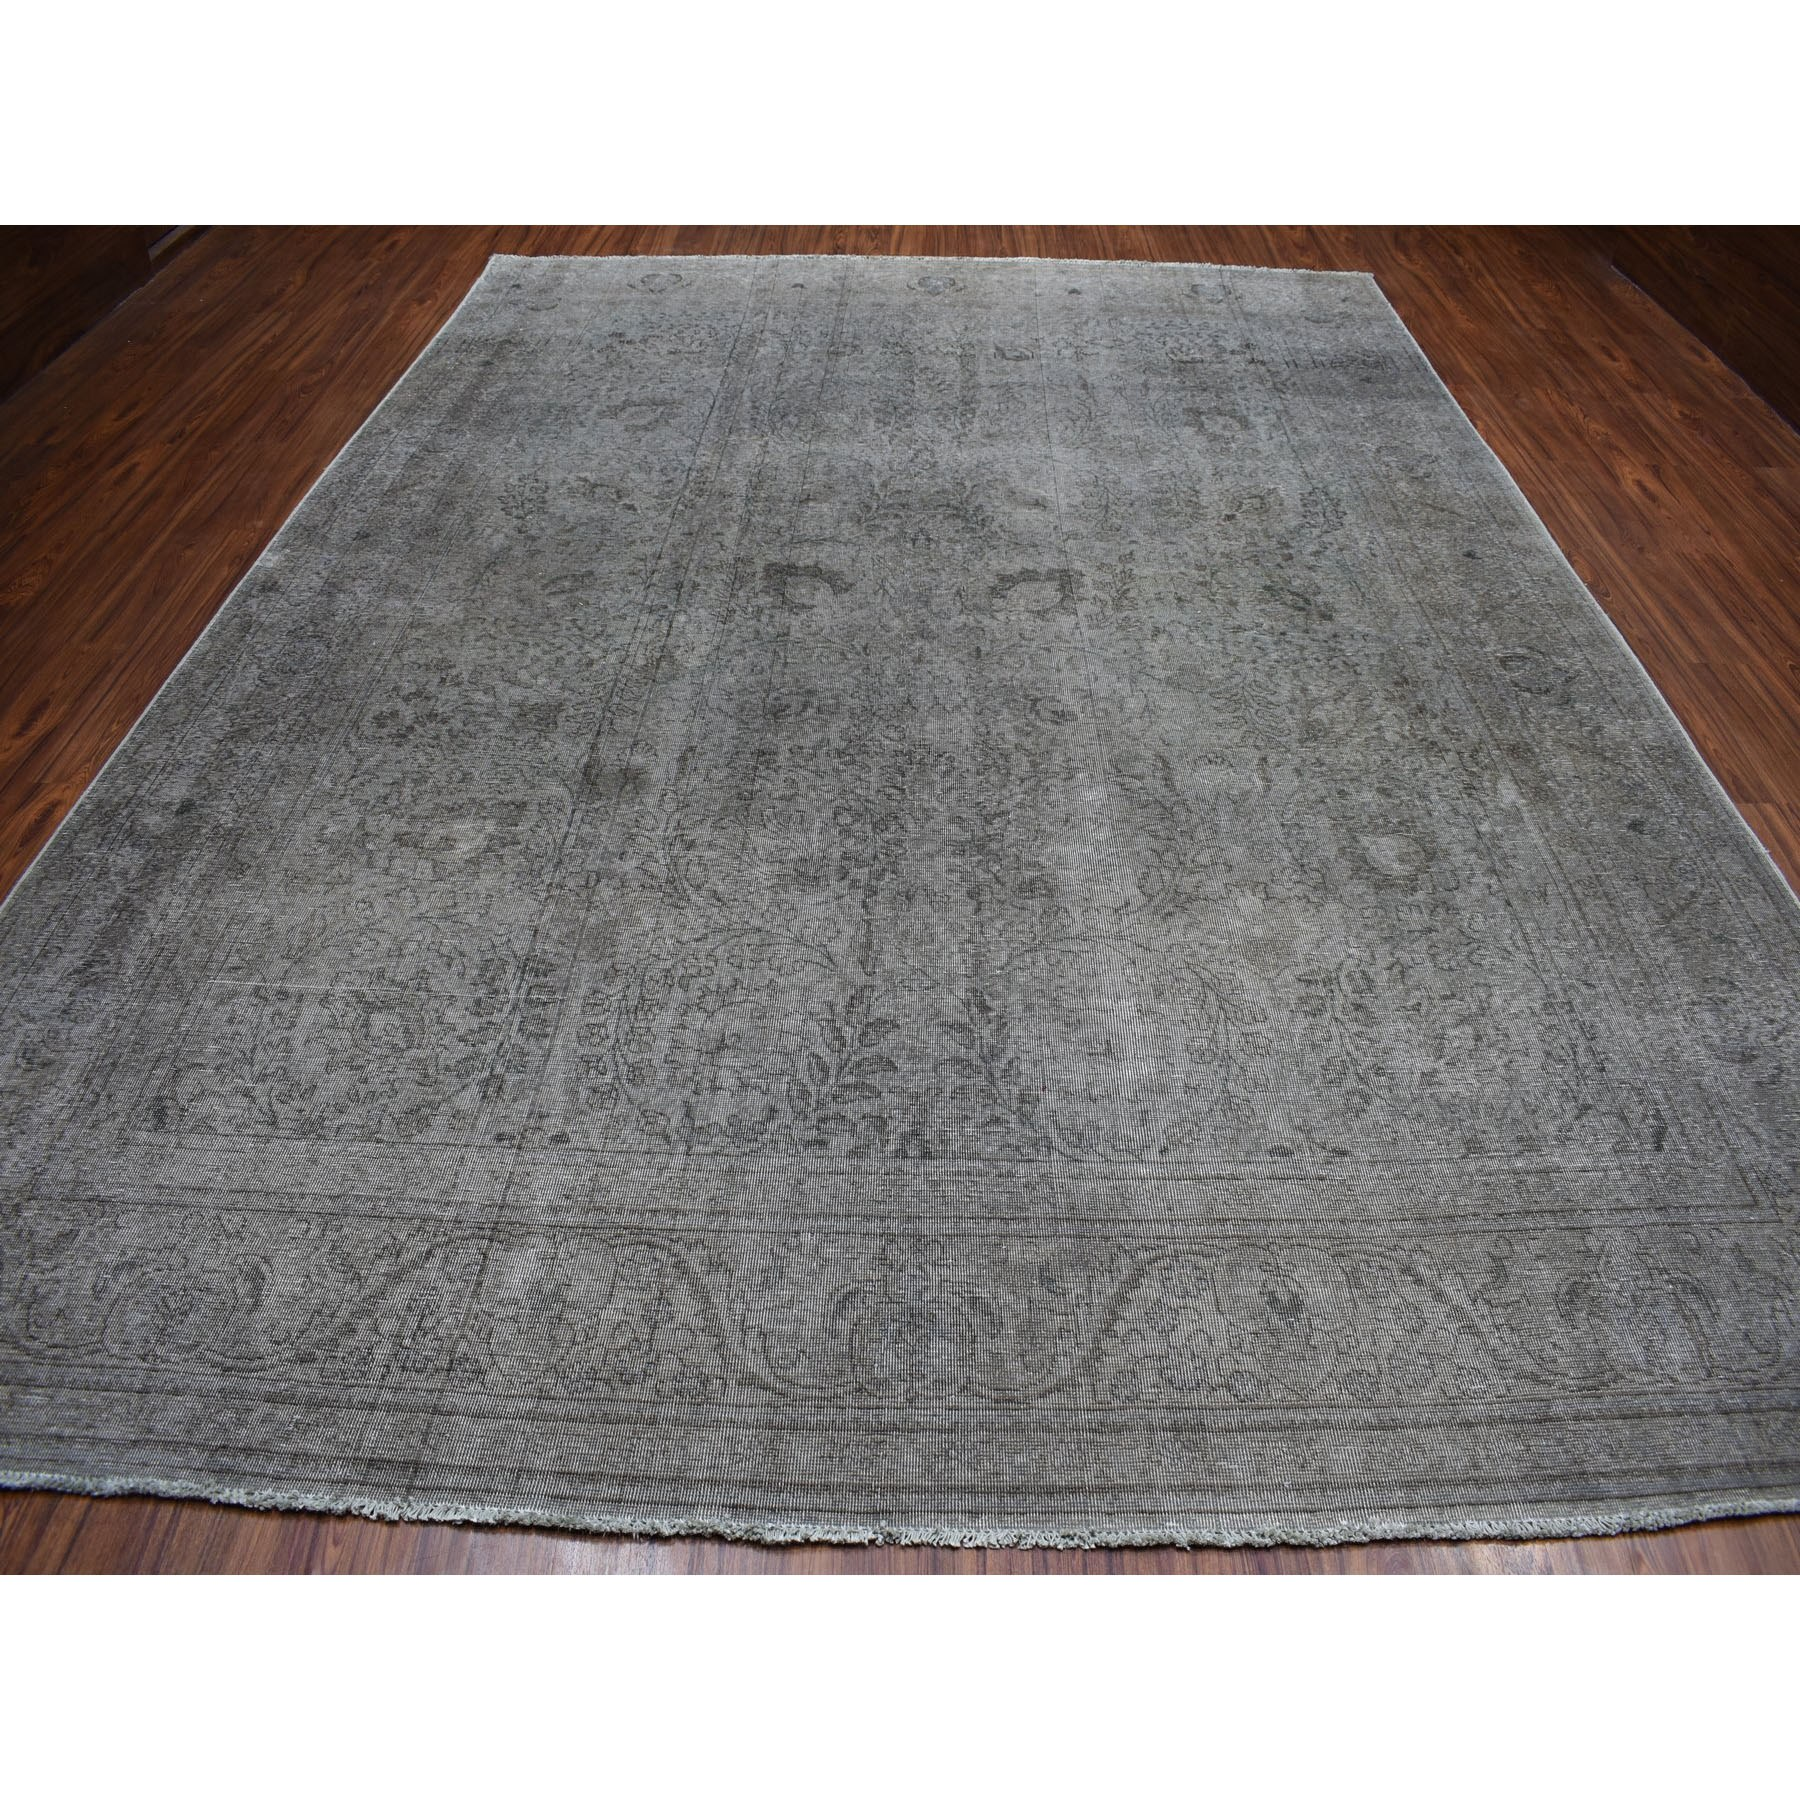 """9'8""""x13' Gray Vintage Persian Tabriz Worn Pile Hand Knotted Oriental Rug"""